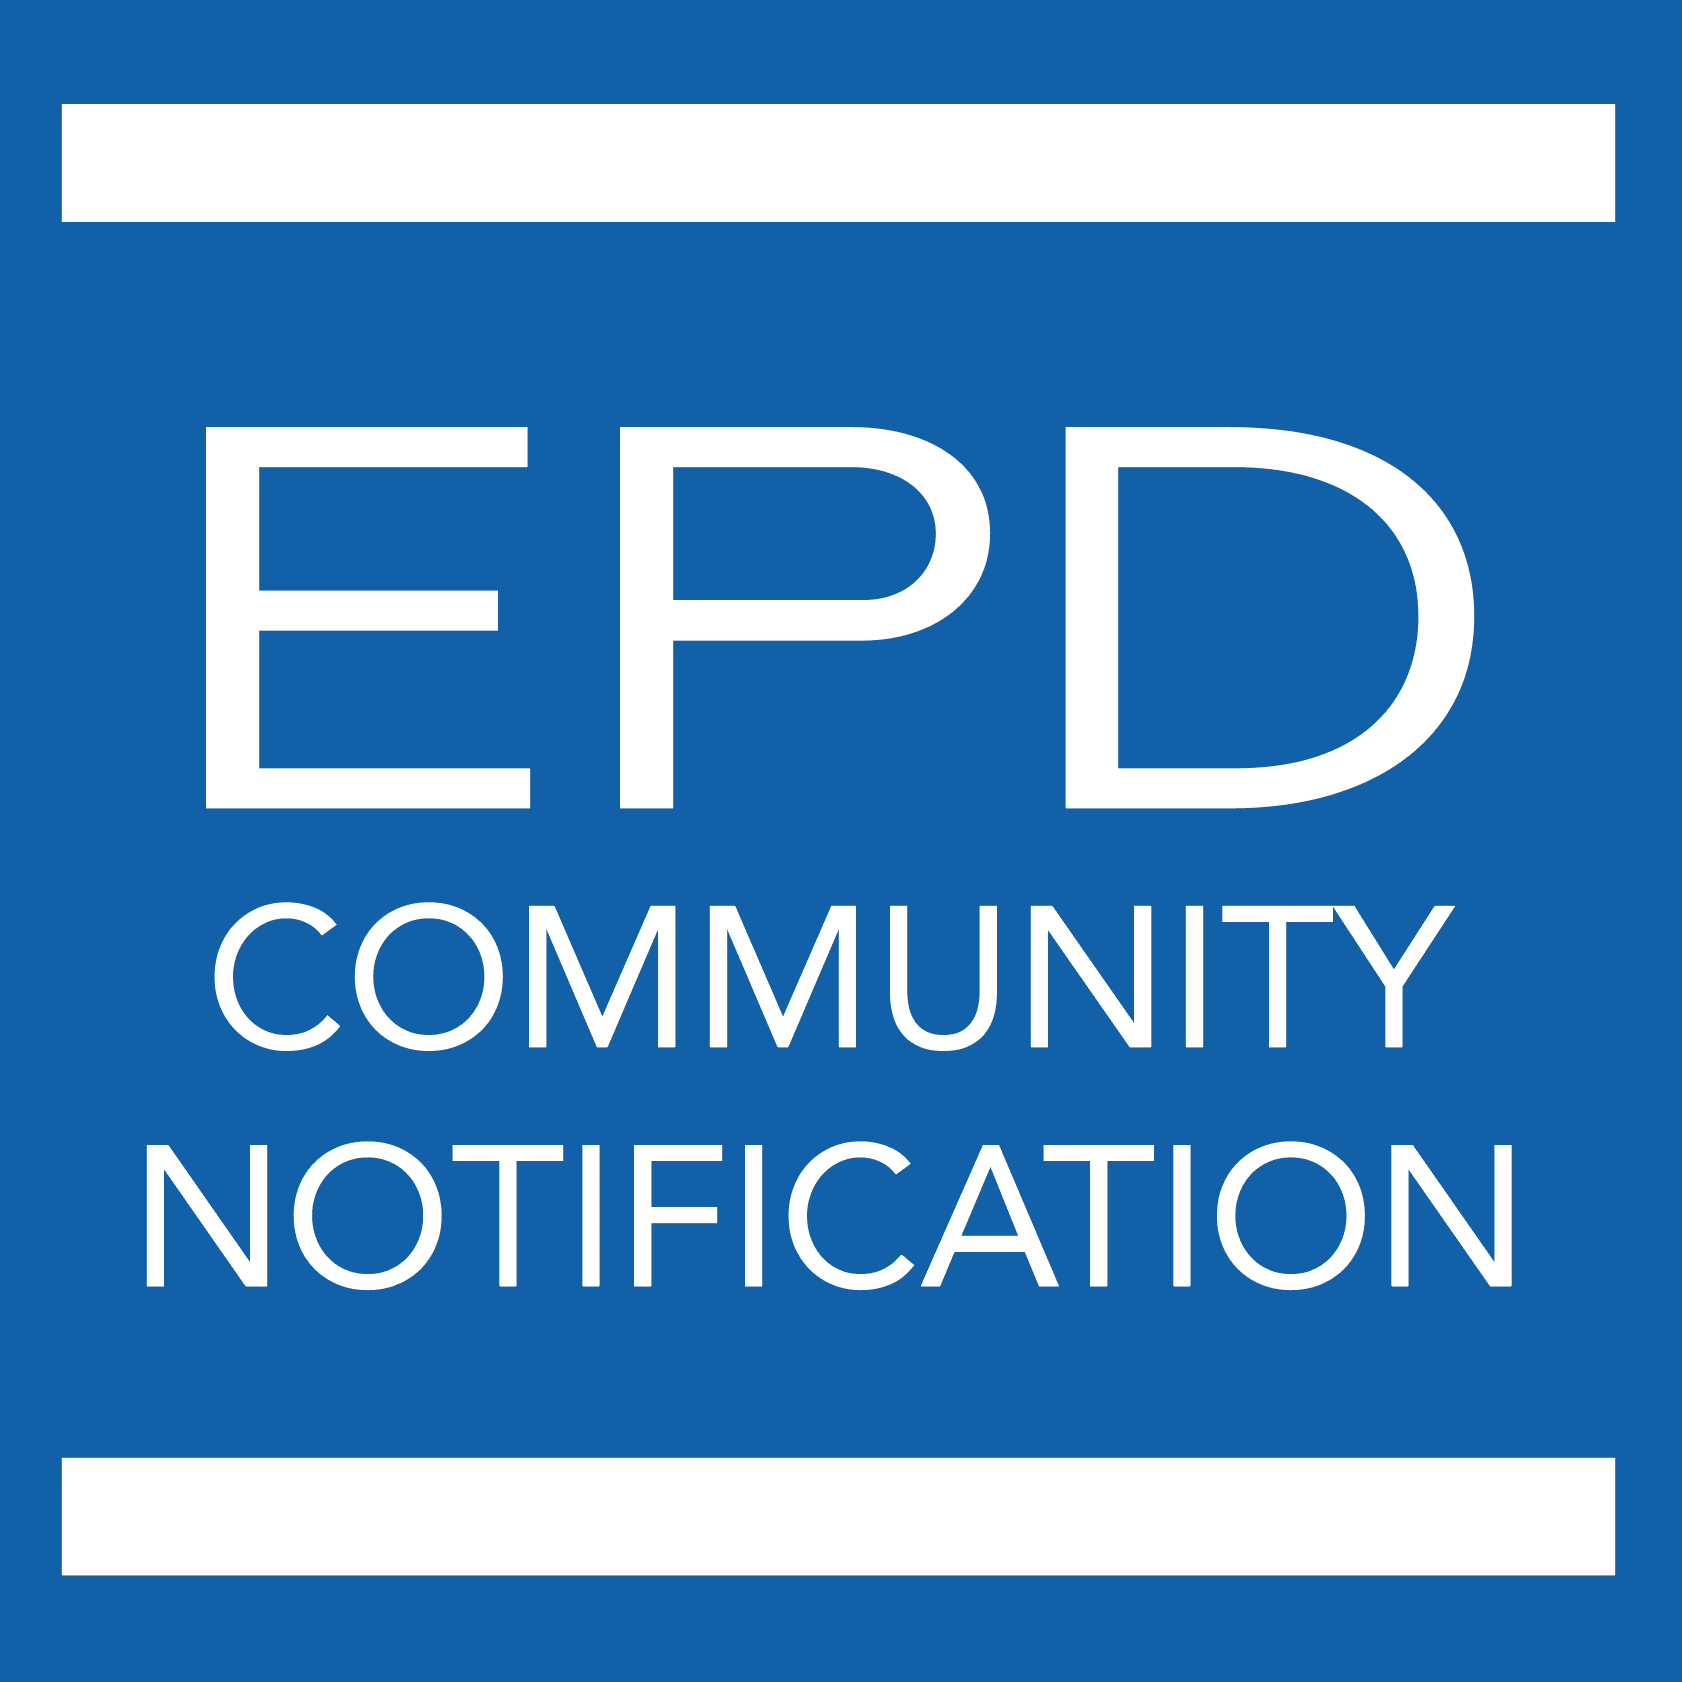 EPD Community Notification